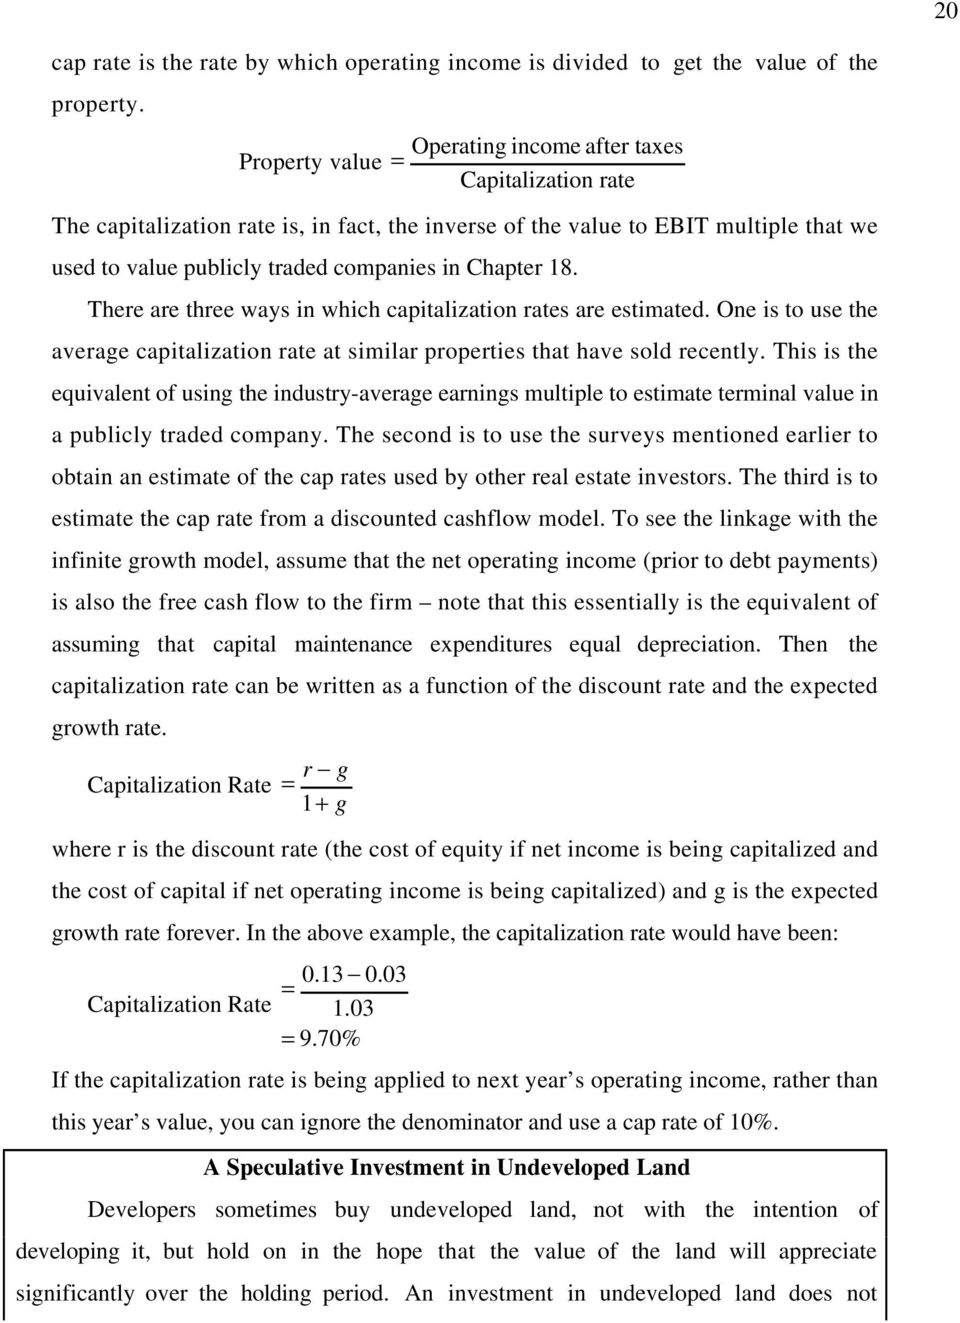 Chapter 18. There are three ways in which capitalization rates are estimated. One is to use the average capitalization rate at similar properties that have sold recently.